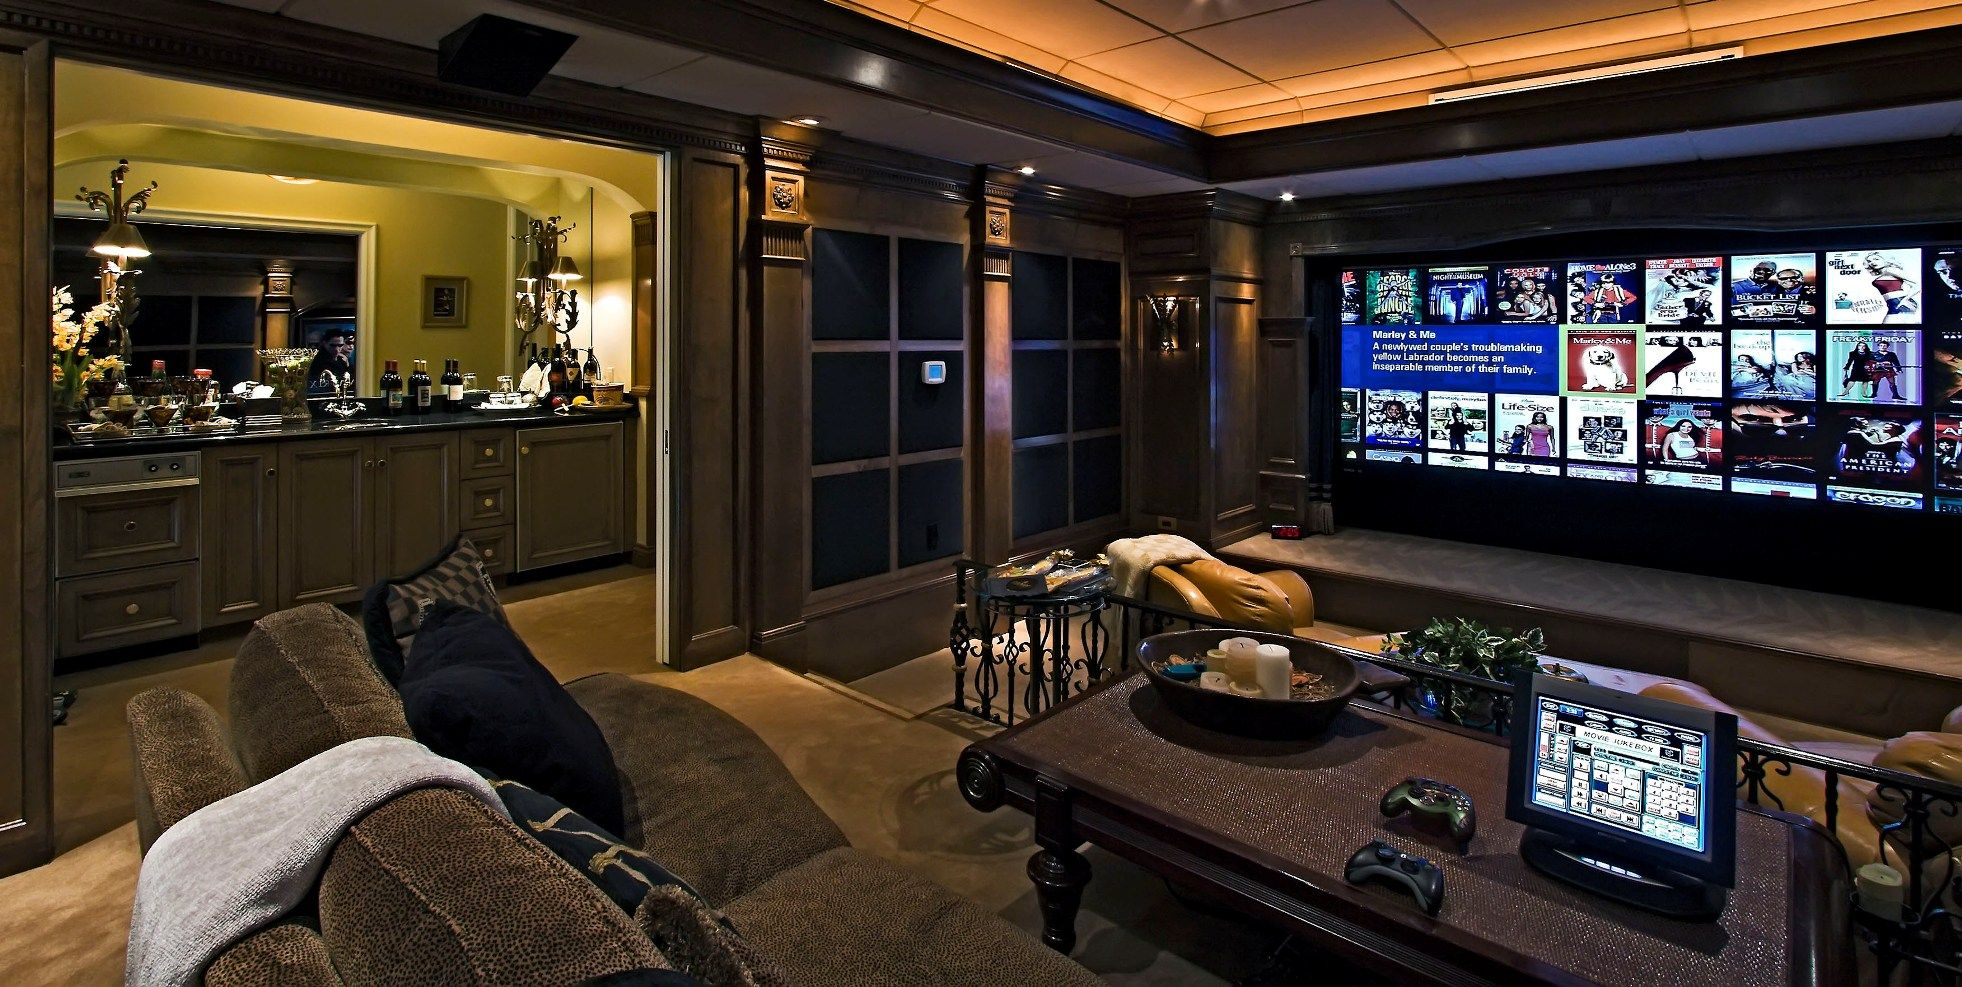 Home Theatre Design Ideas best small home theater design ideas remodel pictures houzz Home Decorating Ideas Home Theater Decor Ideas Home Theater Home Theater Dcor